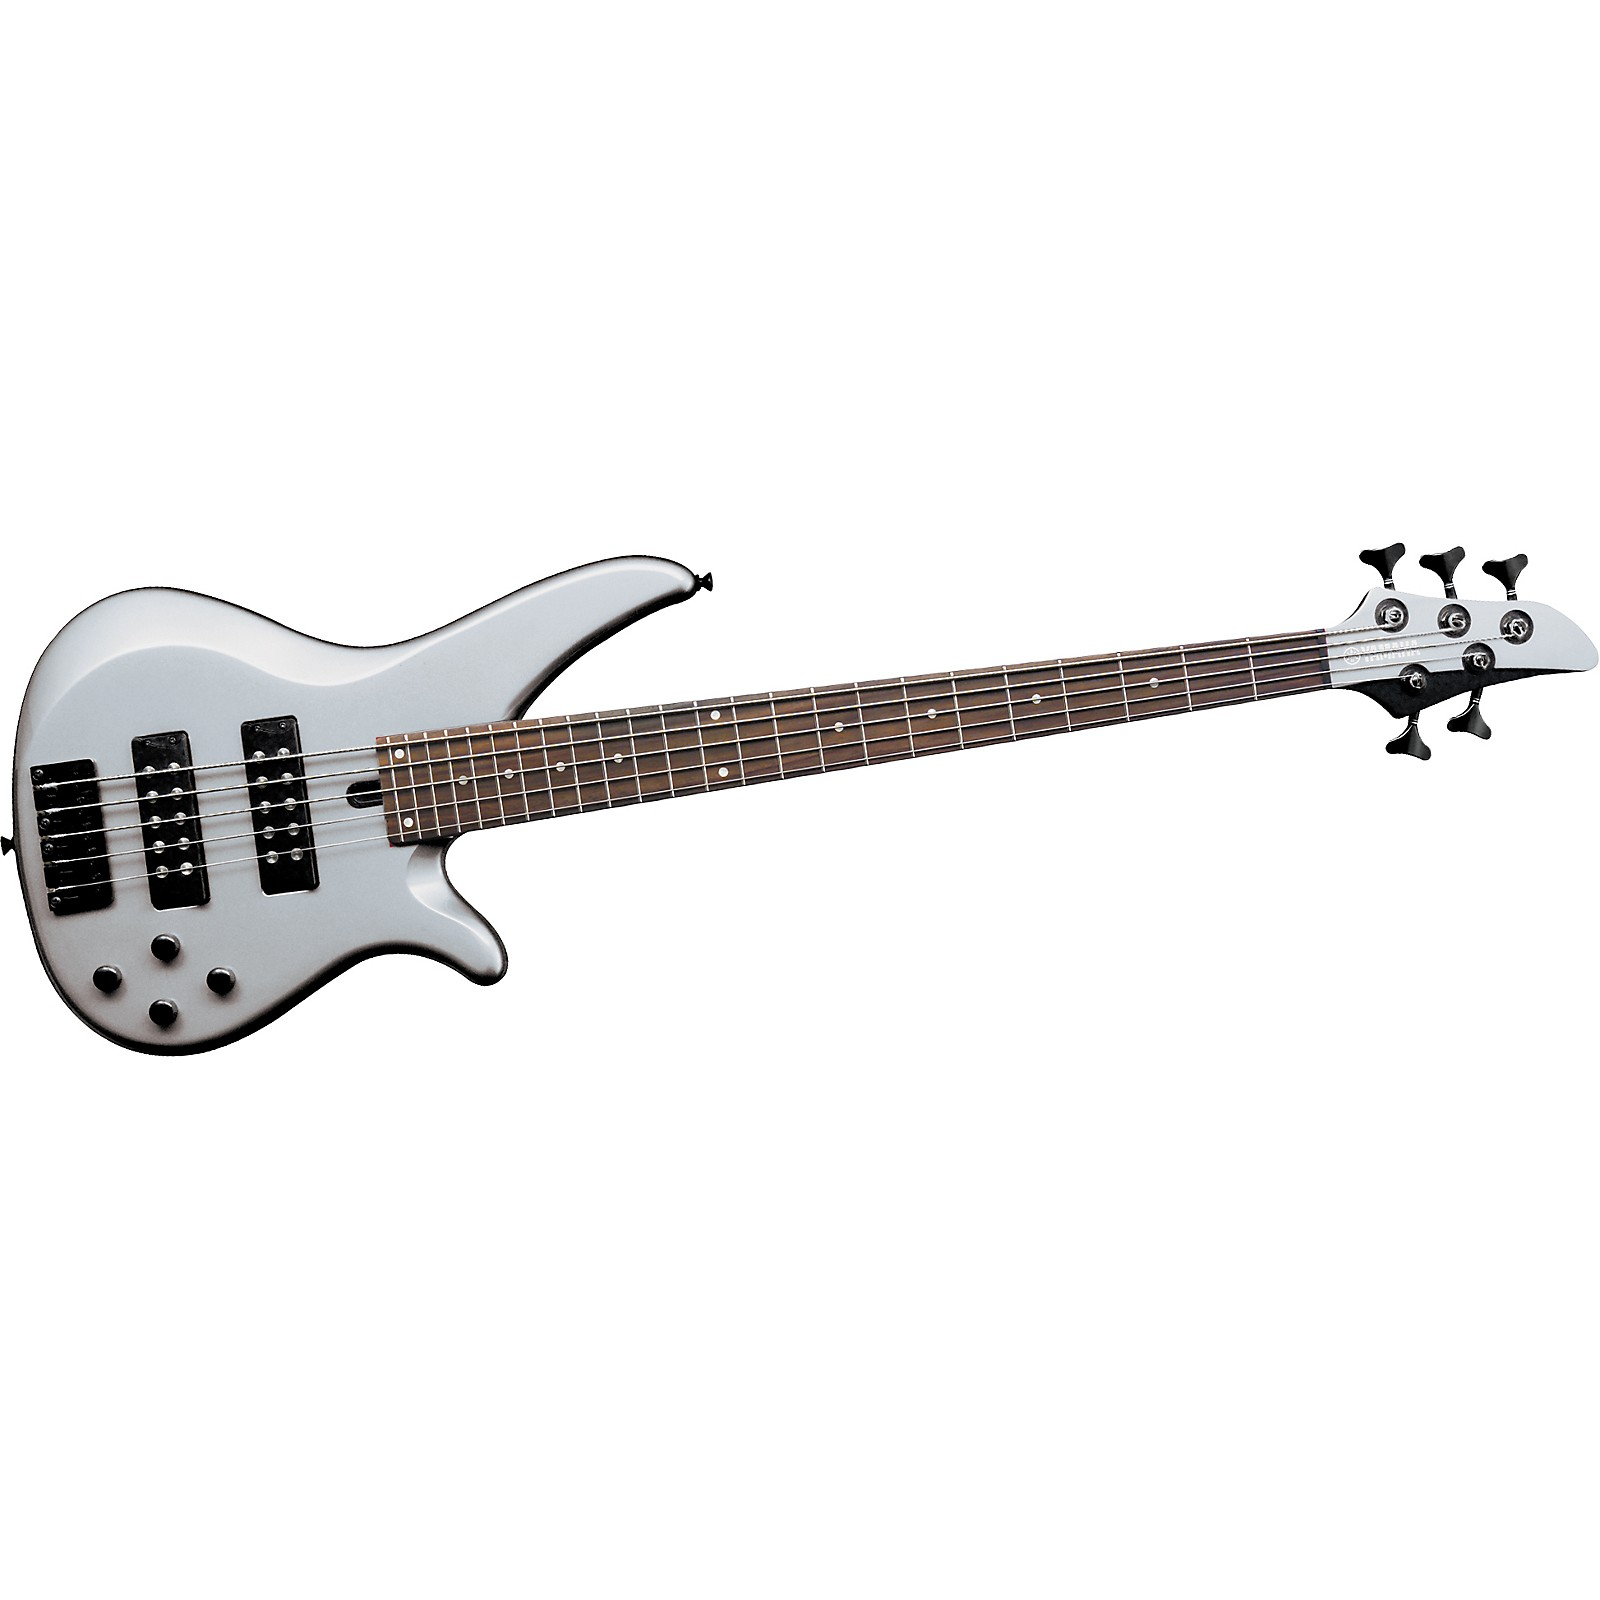 Yamaha RBX375 5-String Bass Guitar